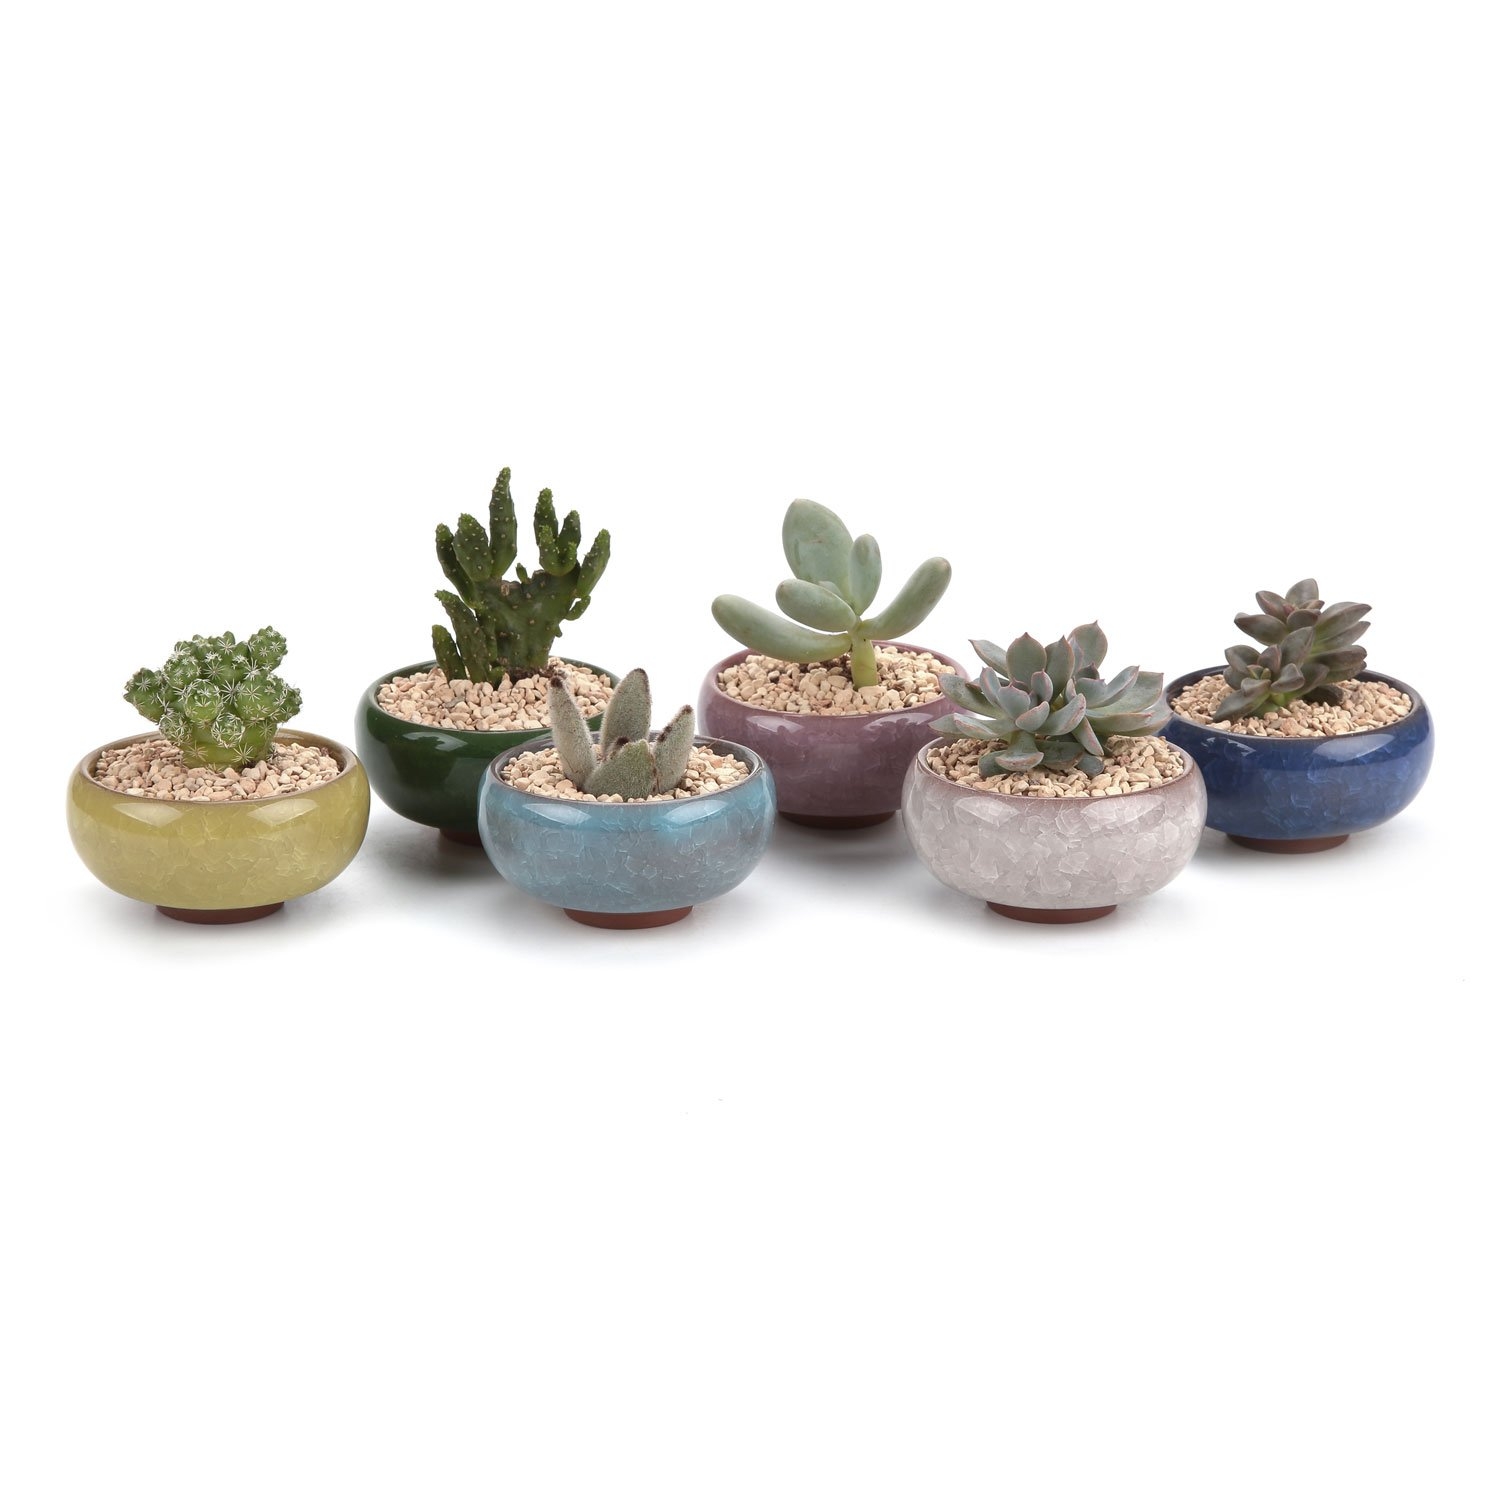 T4U 3 Ball Shape Sets Sucuulent Cactus Plant Pots Flower Pots Planters Containers Window Boxes 1 Pack of 4